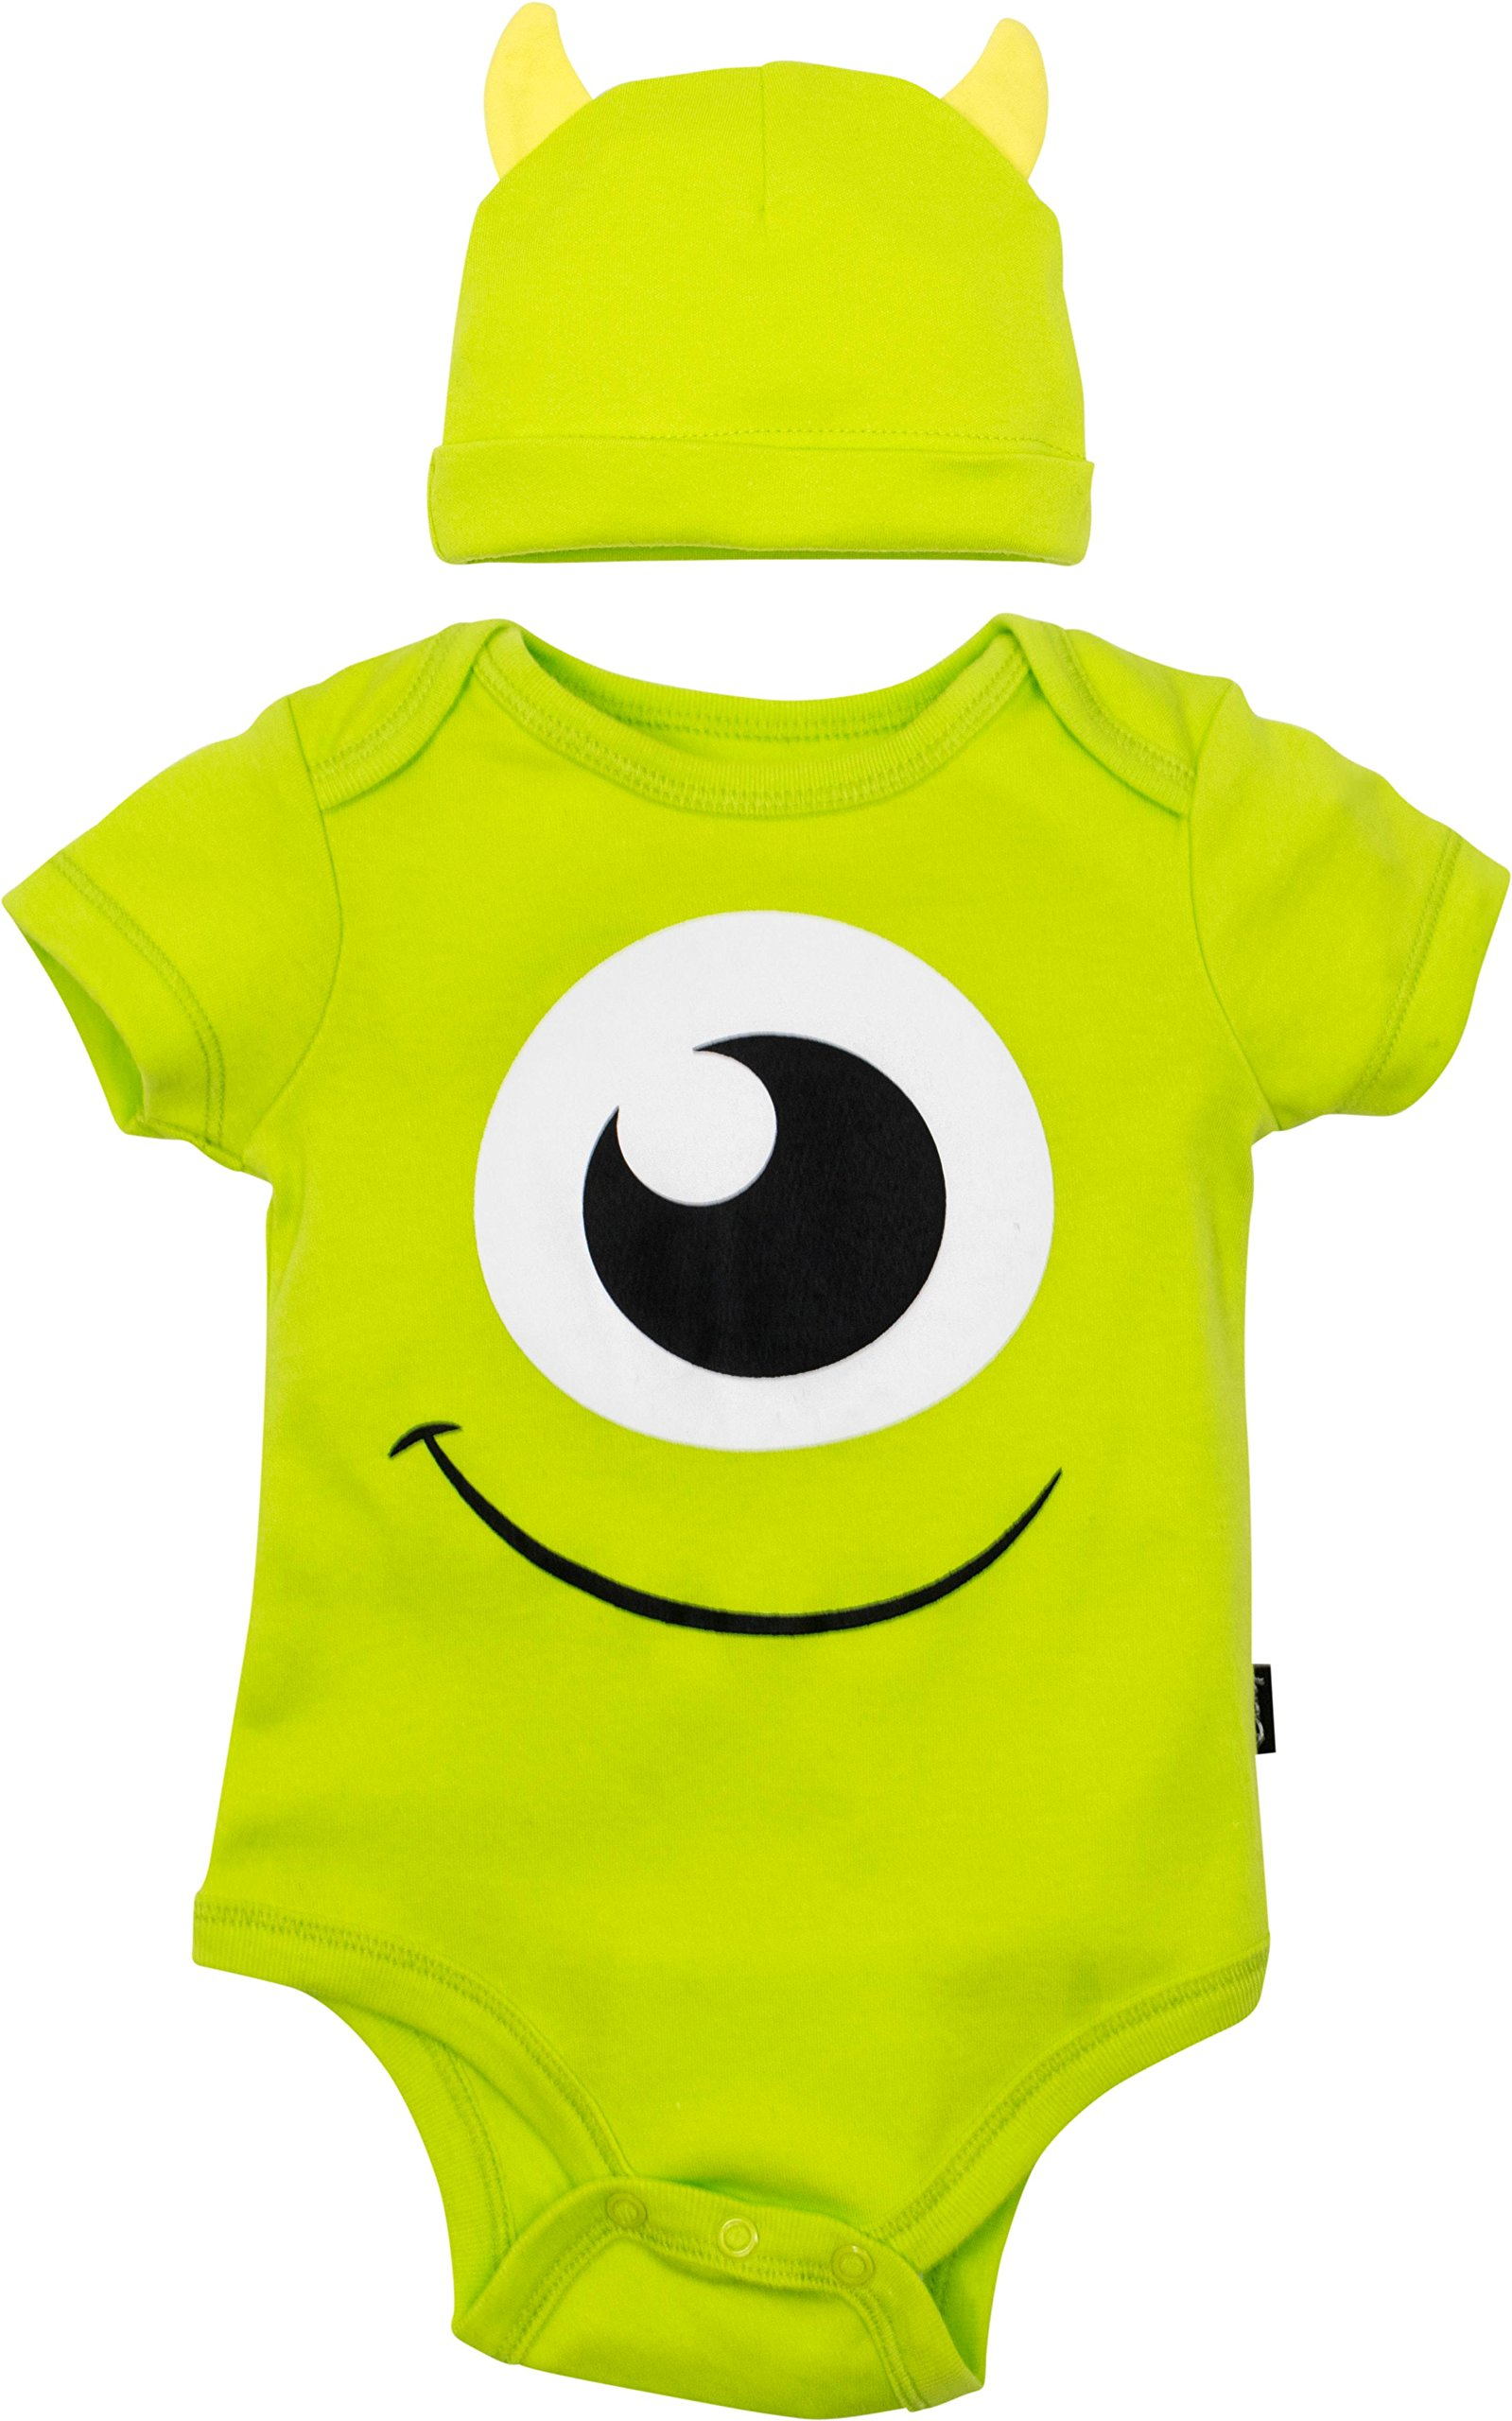 07c84f956f2d Get Quotations · Disney Pixar Monsters Inc. Mike Wazowski Baby Costume  Bodysuit and Hat Green